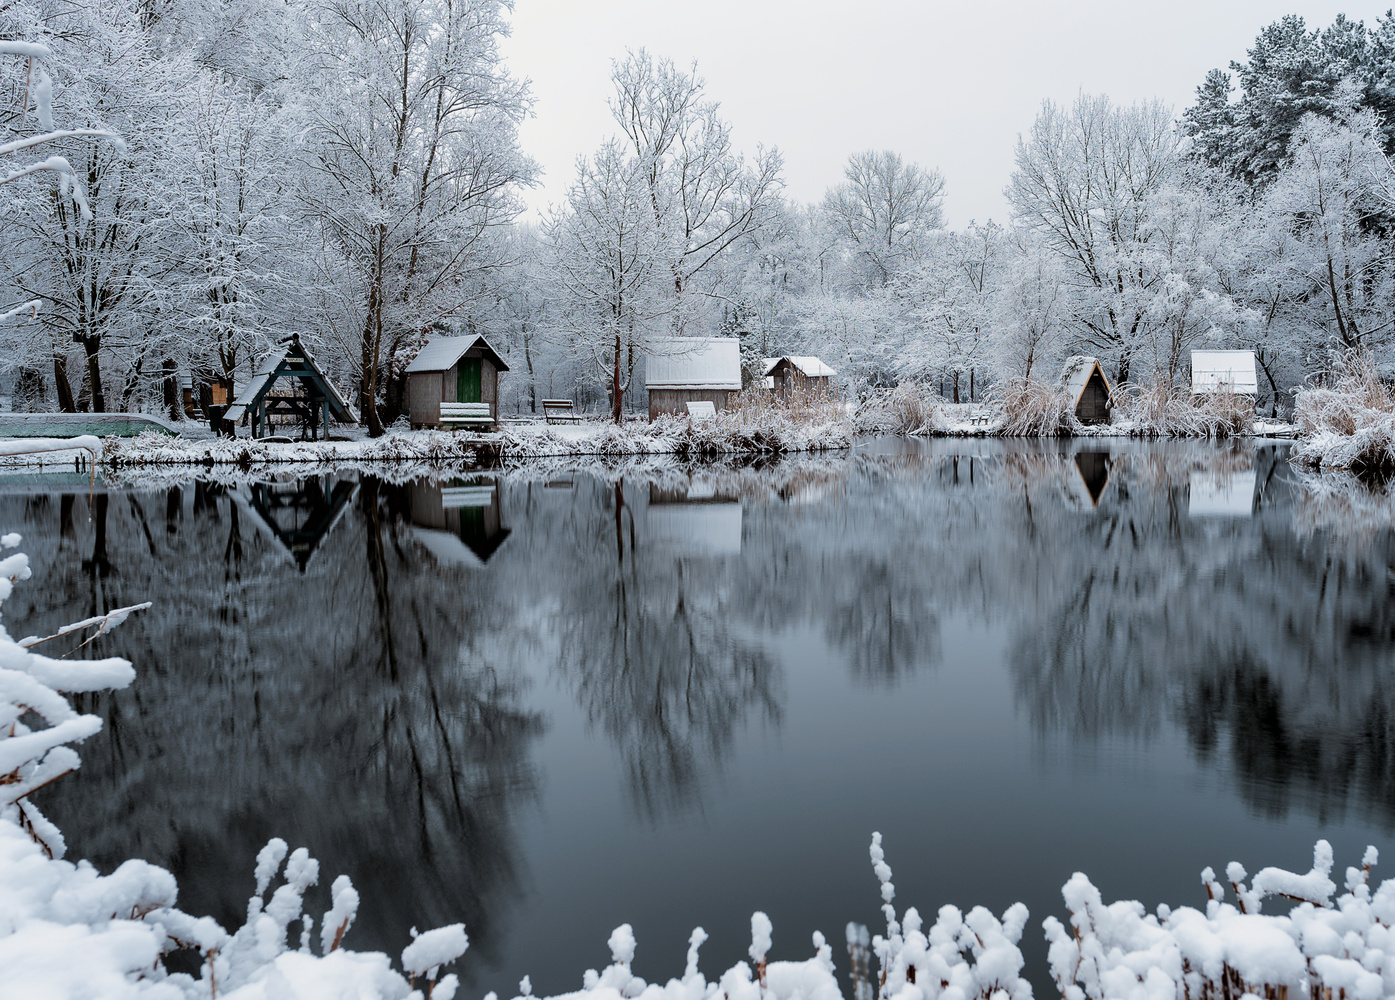 Small fishing village in Hungary by Gabor Szarvas